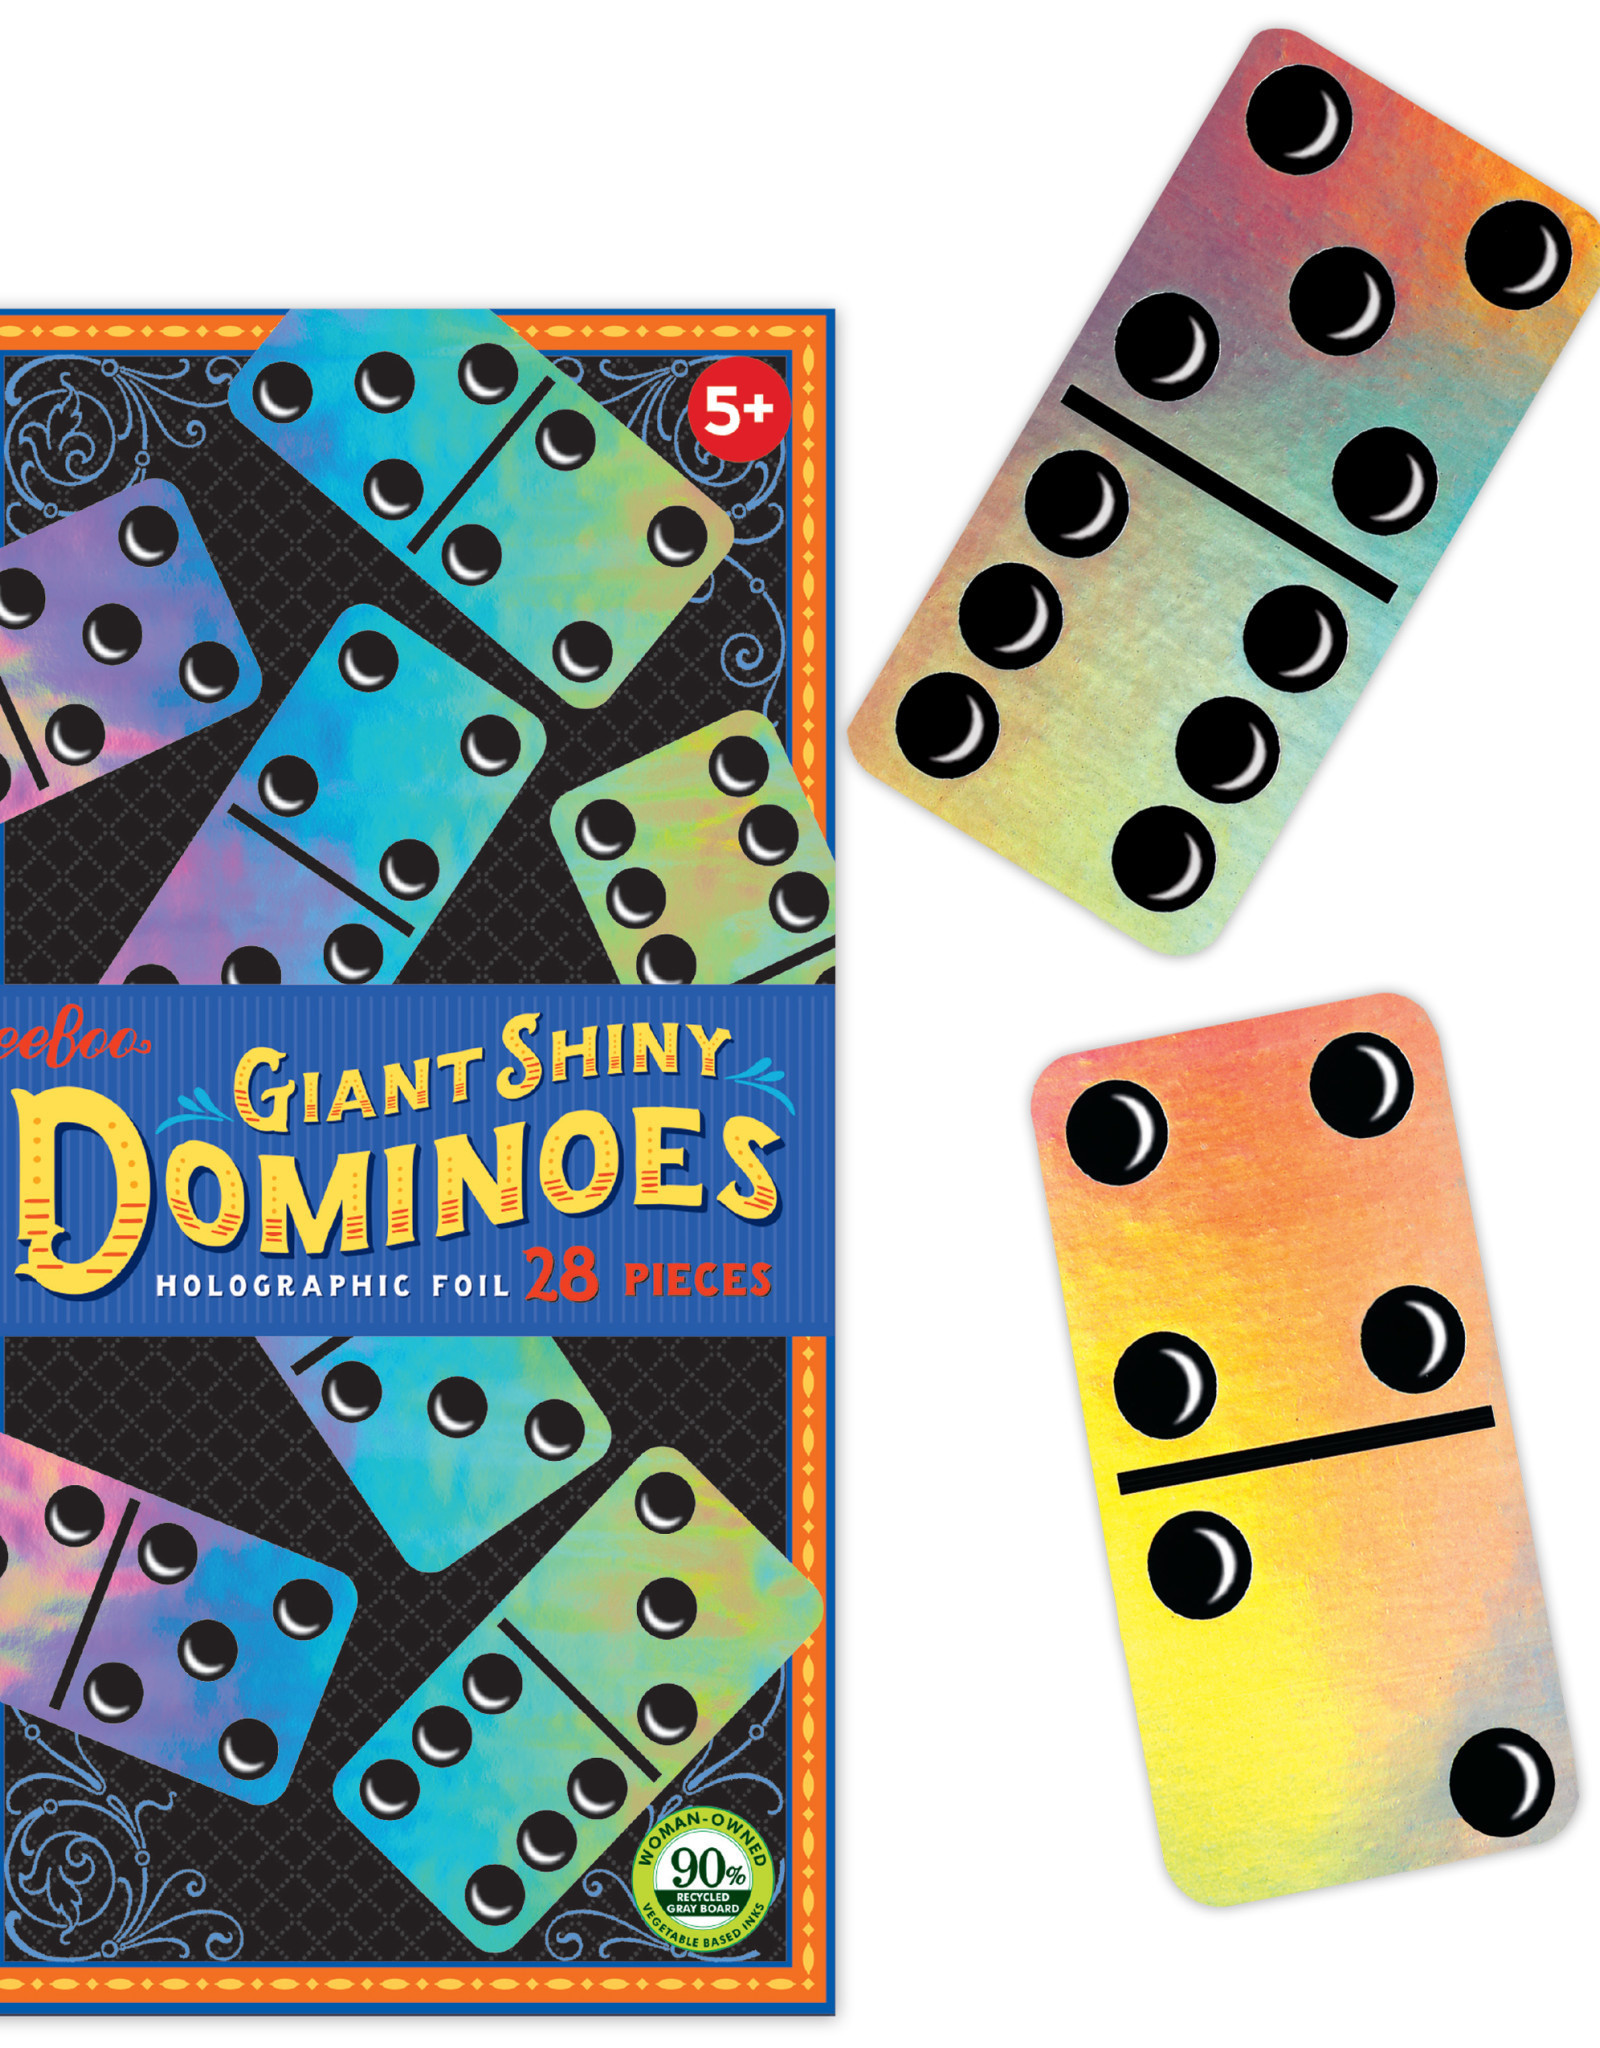 eeBoo Giant Shiny Dominoes